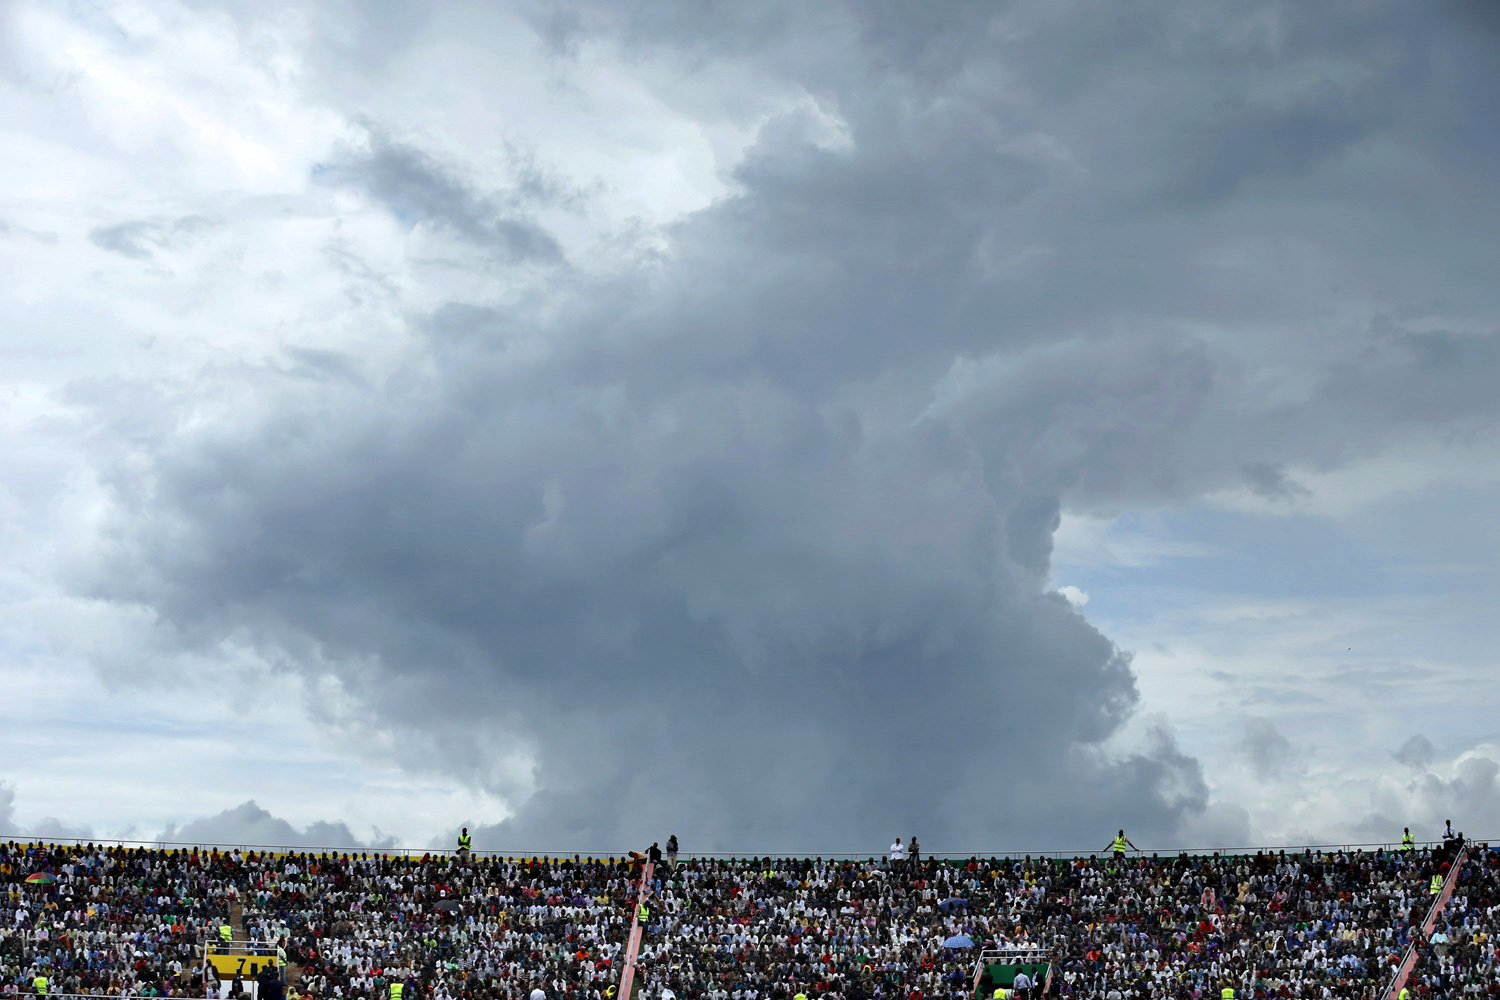 Apr. 7, 2014. The sky threatens rain as tens of thousands of people gather to commemorate the 20th anniversary the 1994 genocide at Amahoro Stadium  in Kigali, Rwanda.